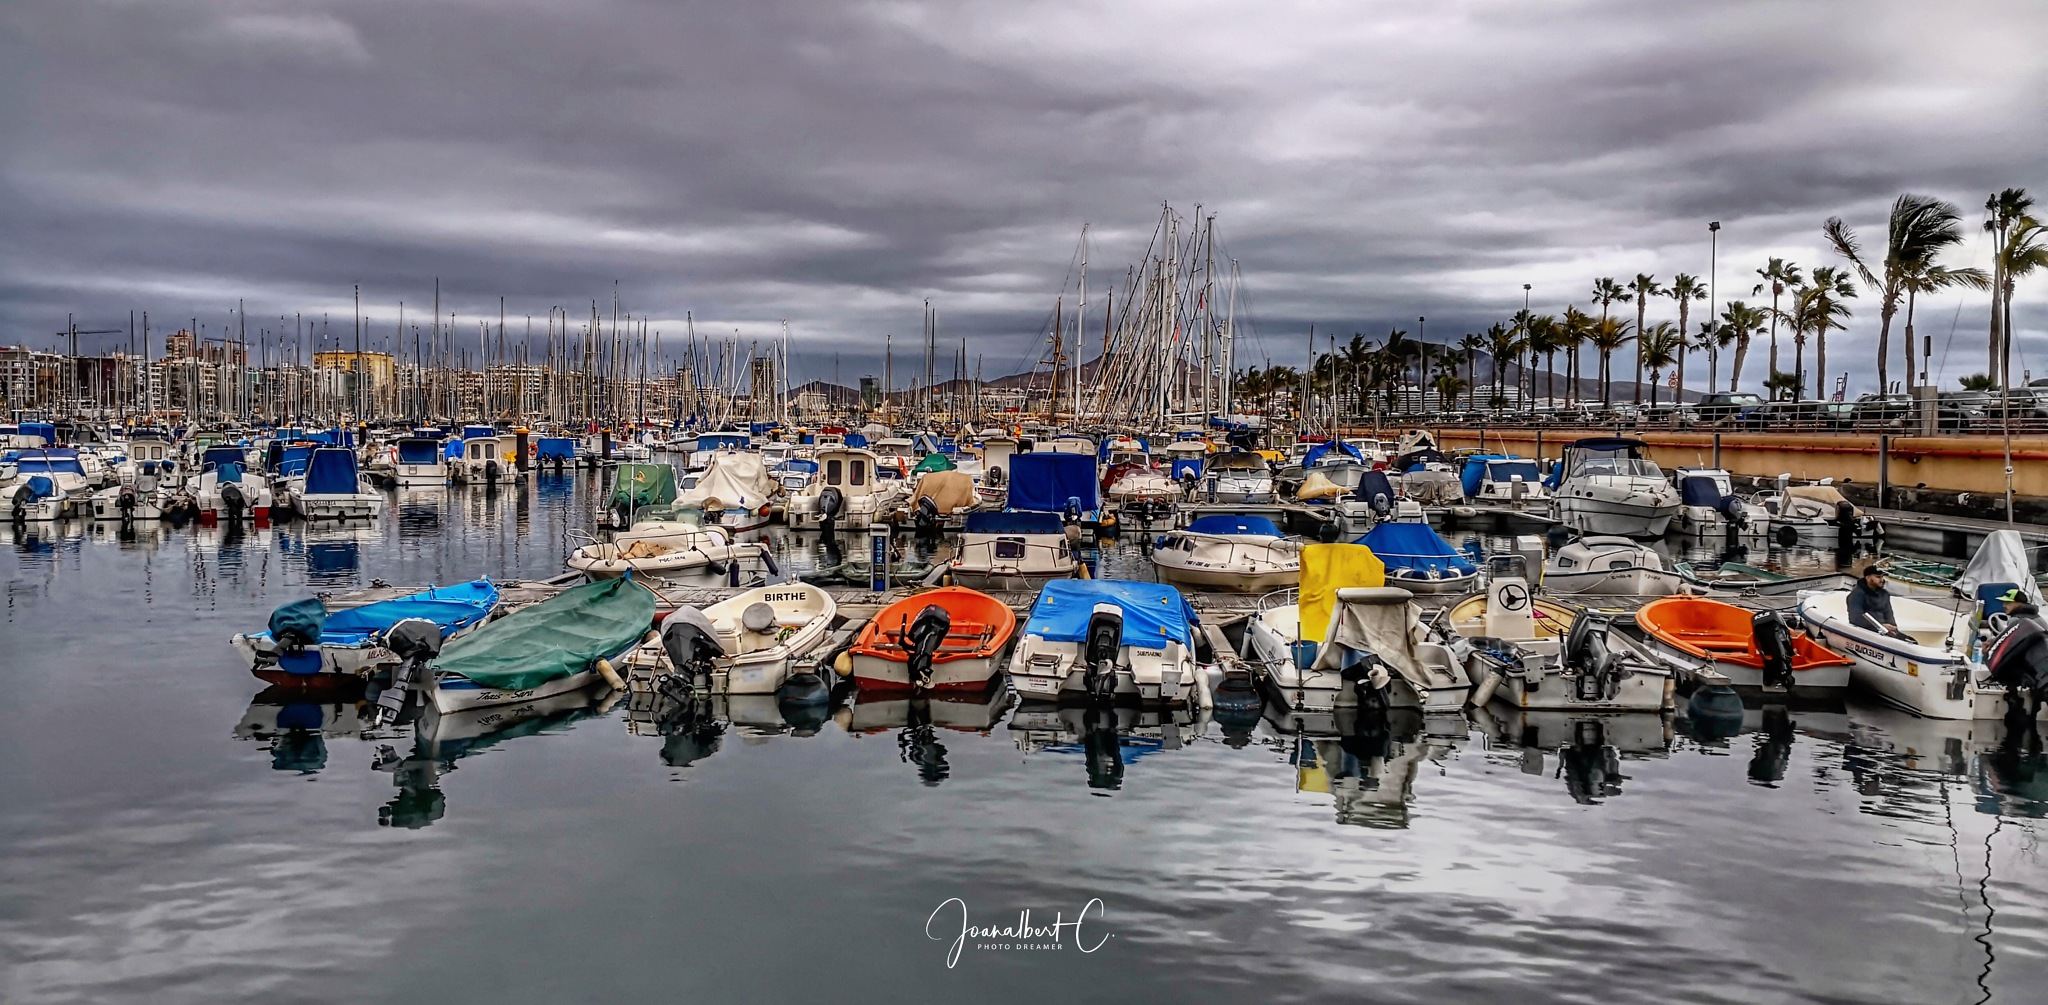 Photo in Travel #boats #harbour #docks #ocean #clouds #palmtrees #winter #gran canaria #canarias #macaronesia